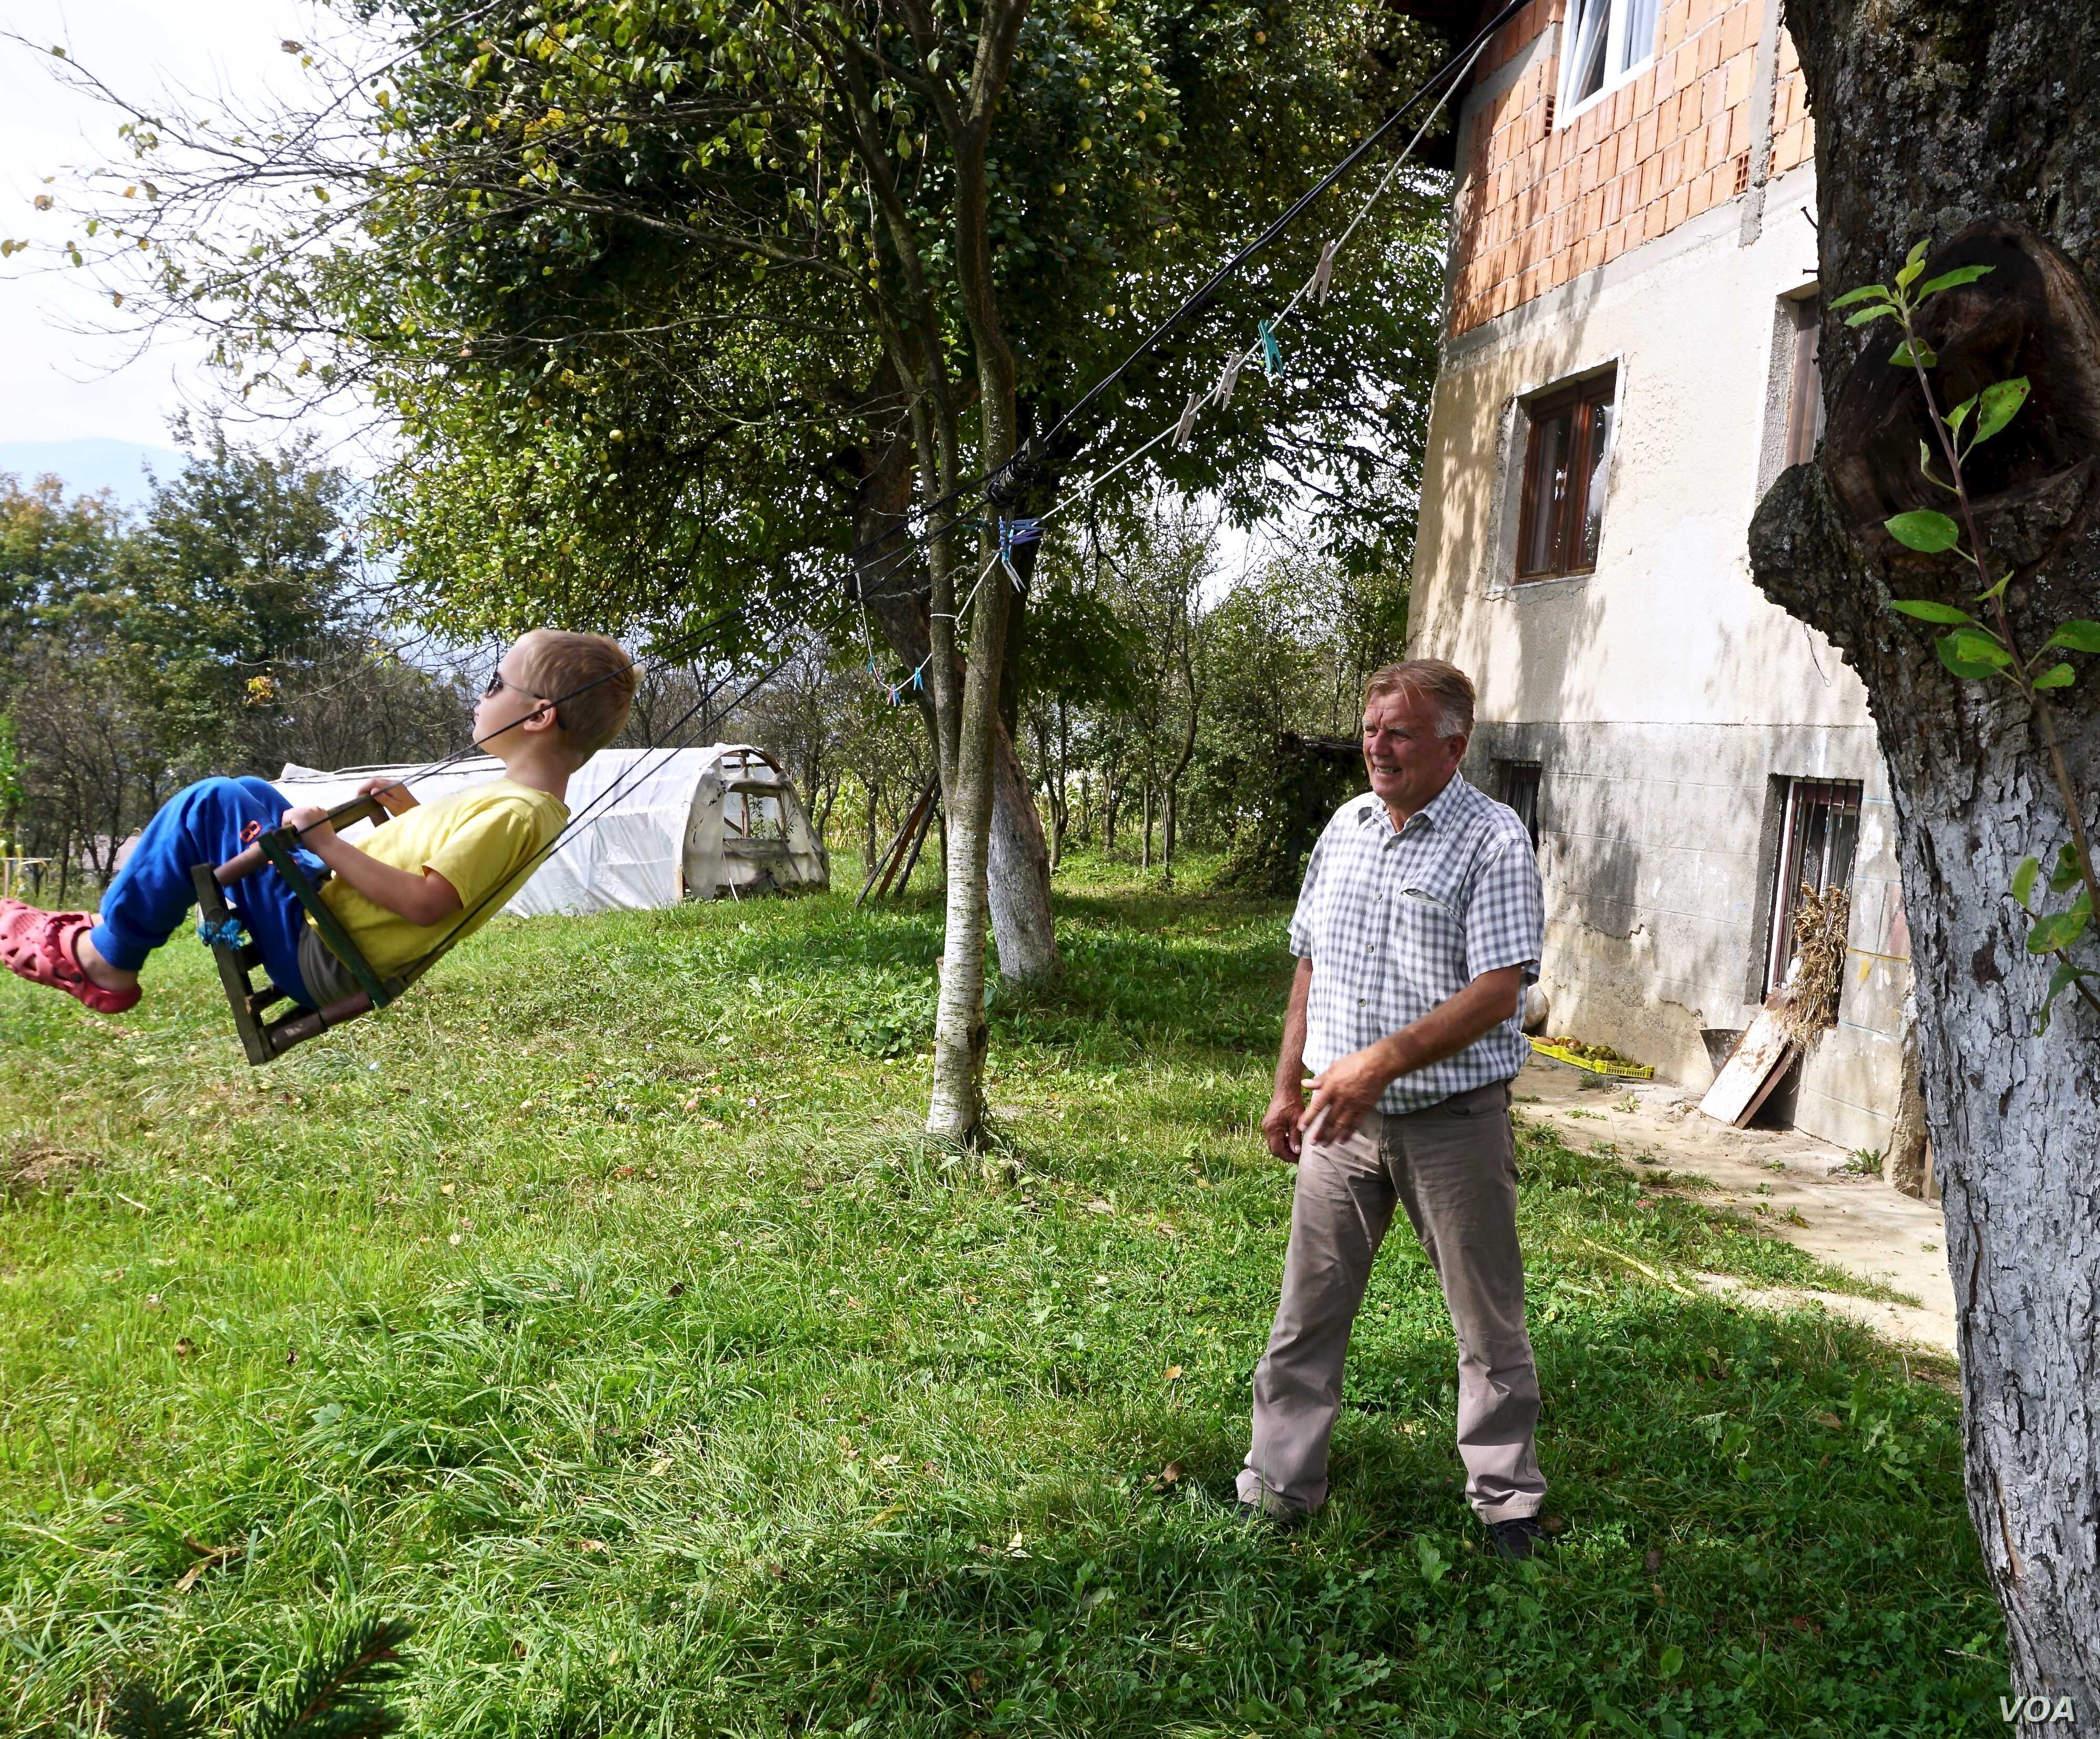 Huso Ahmić, now 72 years-old, plays with a grandson in the garden of his family home, which was rebuilt after it was razed in the 1993 attack. His parents died in the blaze.